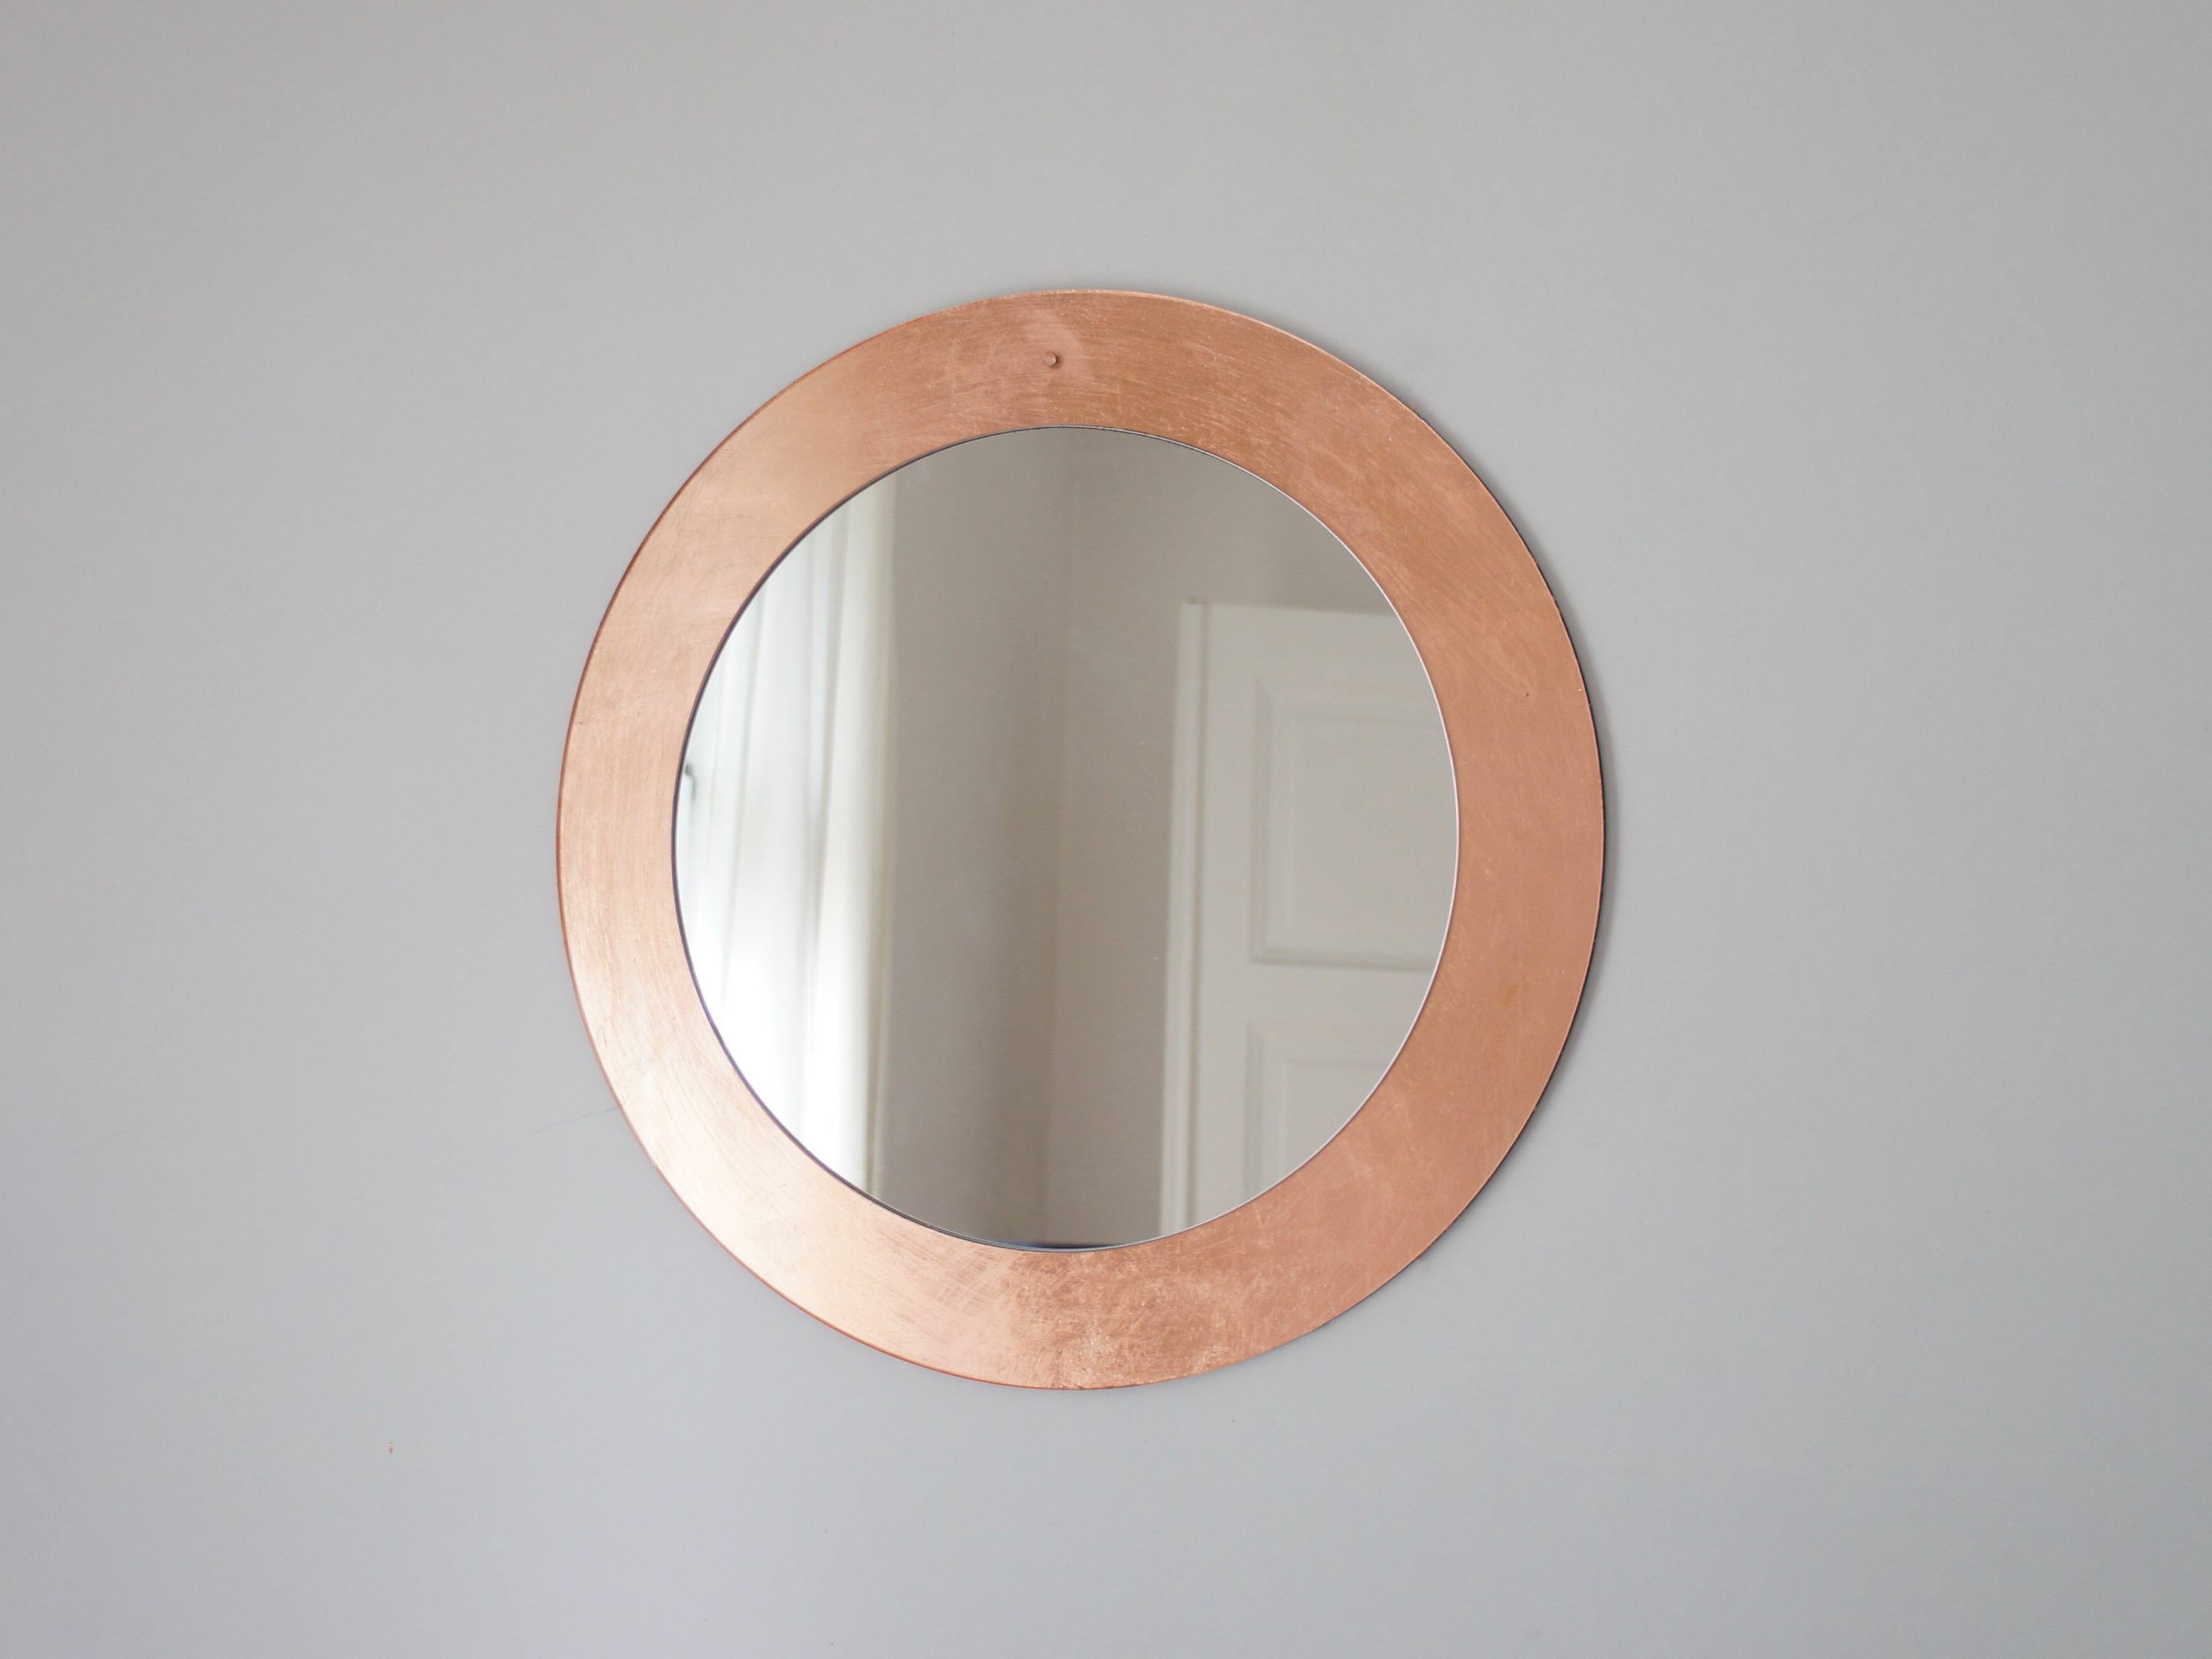 2019 Shop Chic Copper Wall Mirror On Crowdyhouse Within Copper Wall Mirrors (View 3 of 20)